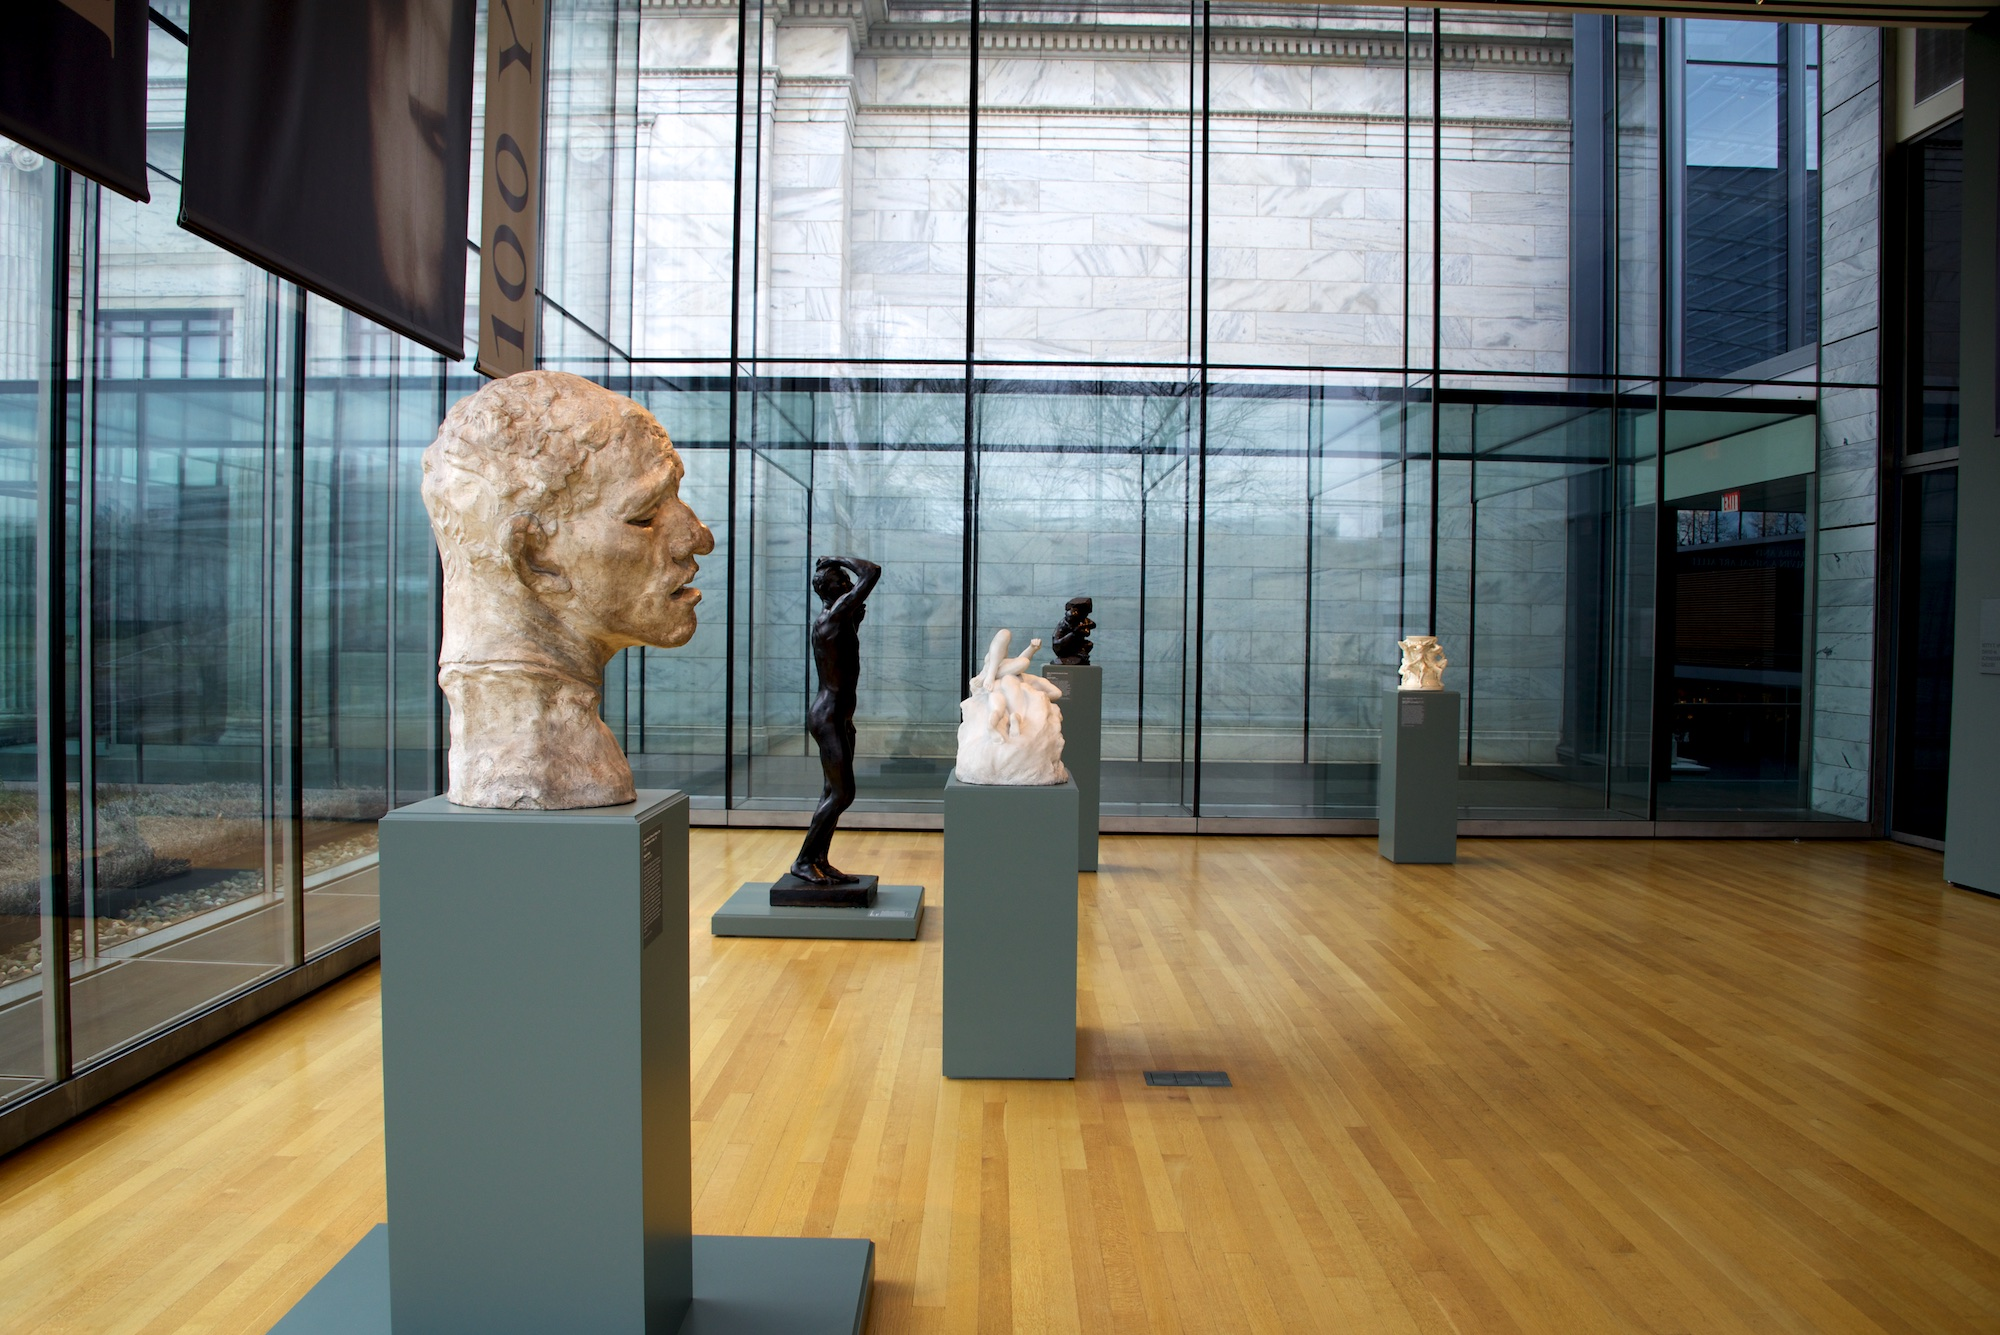 Gallery of #Rodin100 exhibit in Cleveland, Ohio at Cleveland Museum of Art.